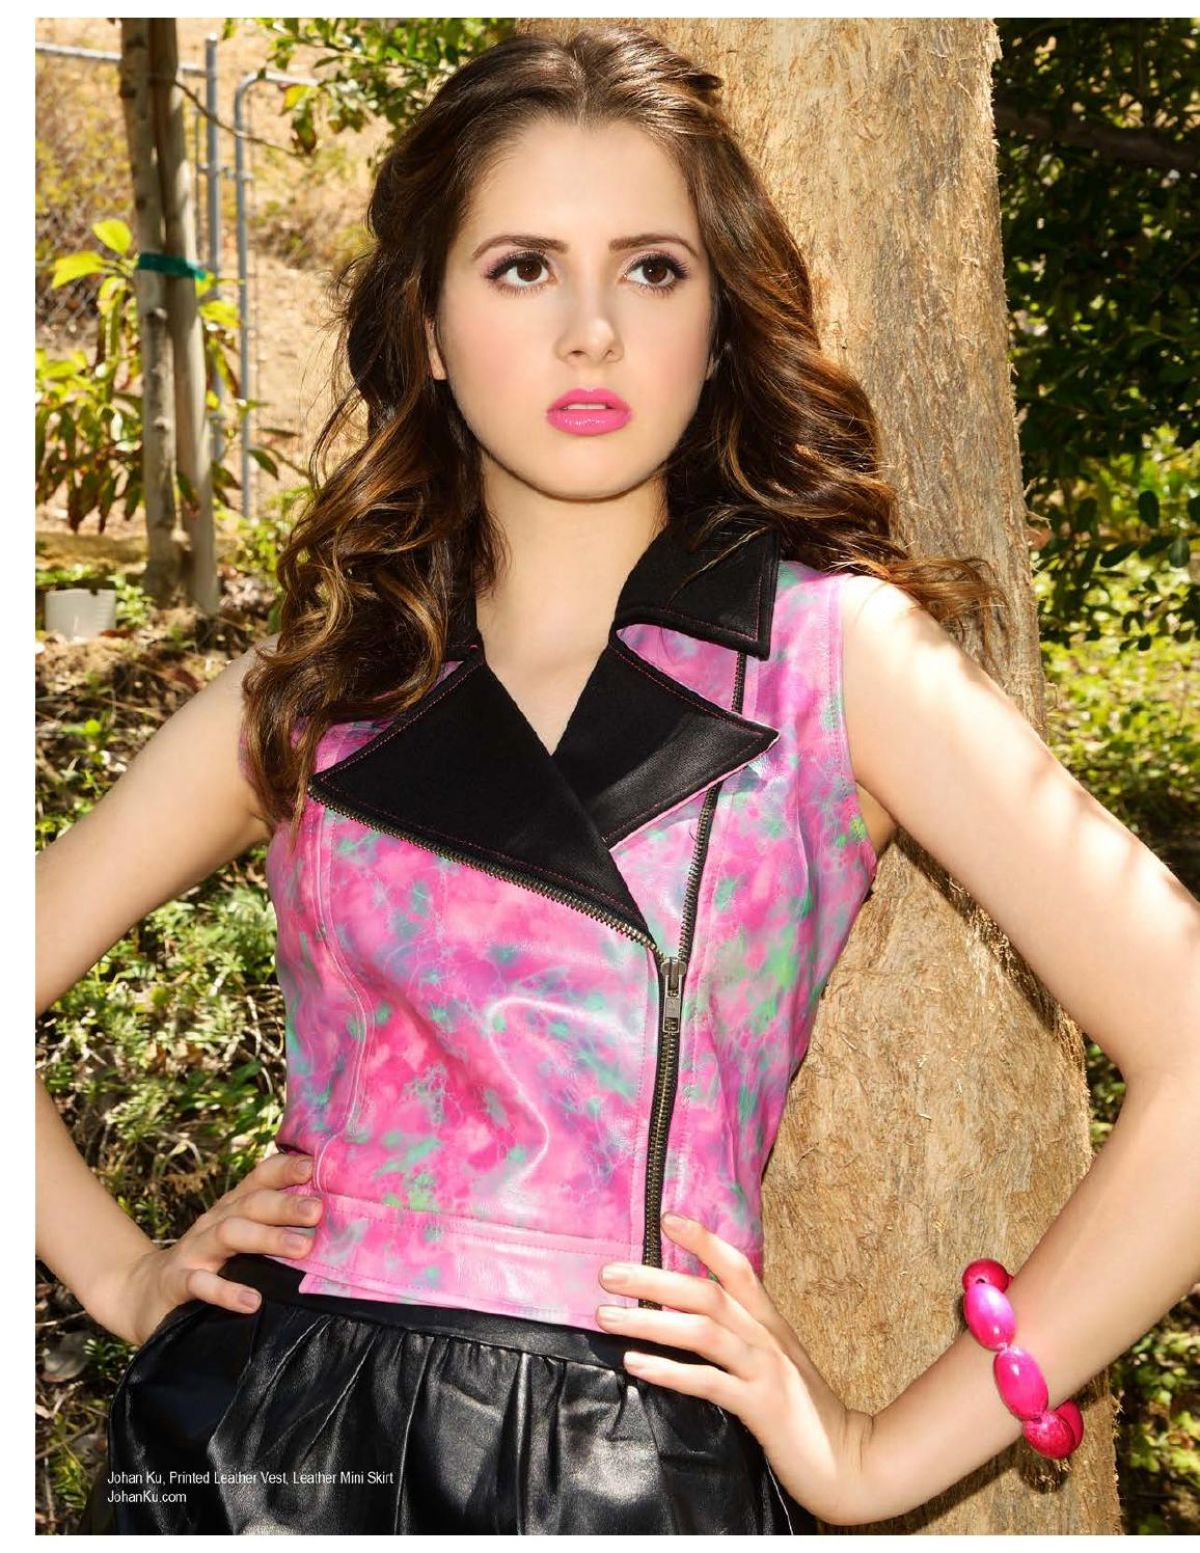 laura-marano-in-regard-magazine-august-2013-issue_2.jpg